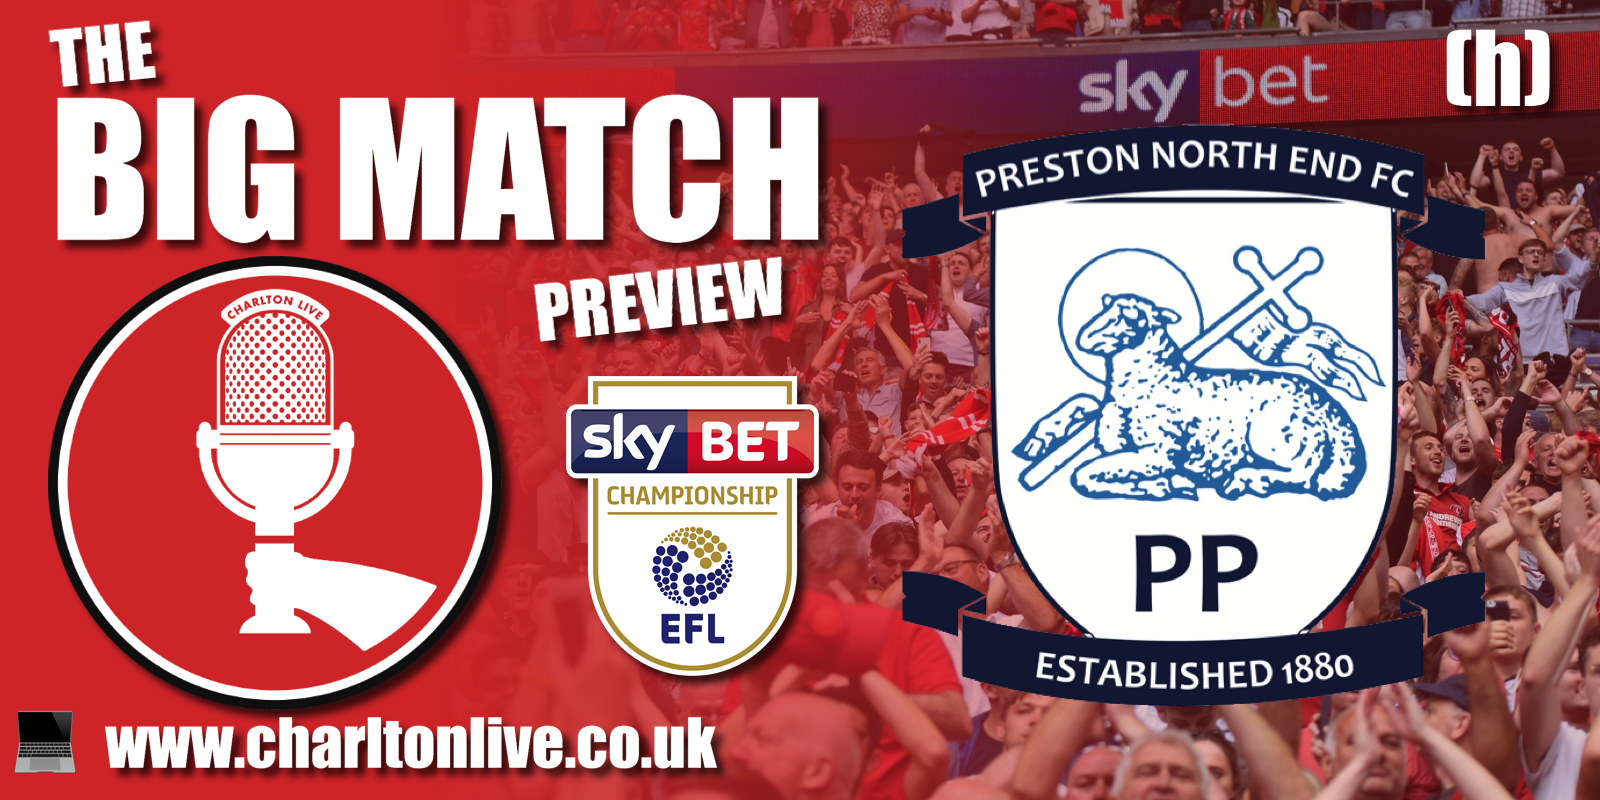 Join Louis Mendez, Tom Wallin, Nathan Muller and Lewis Catt as they gear up for Sunday's home game with Preston North End. They discuss the […]